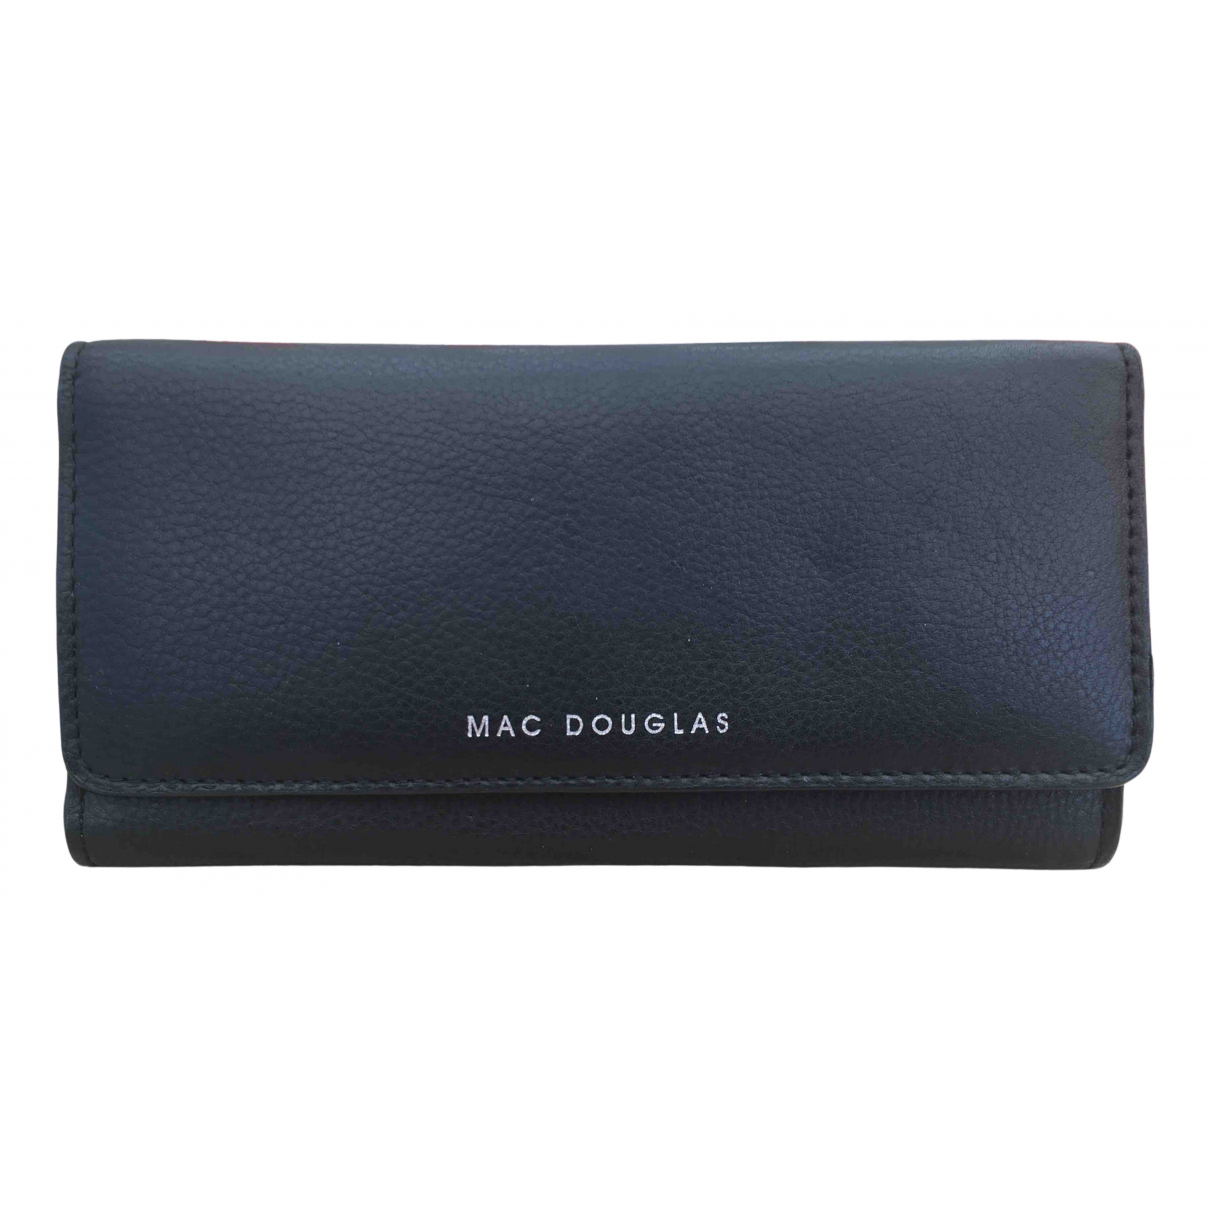 Mac Douglas N Black Leather Purses, wallet & cases for Women N